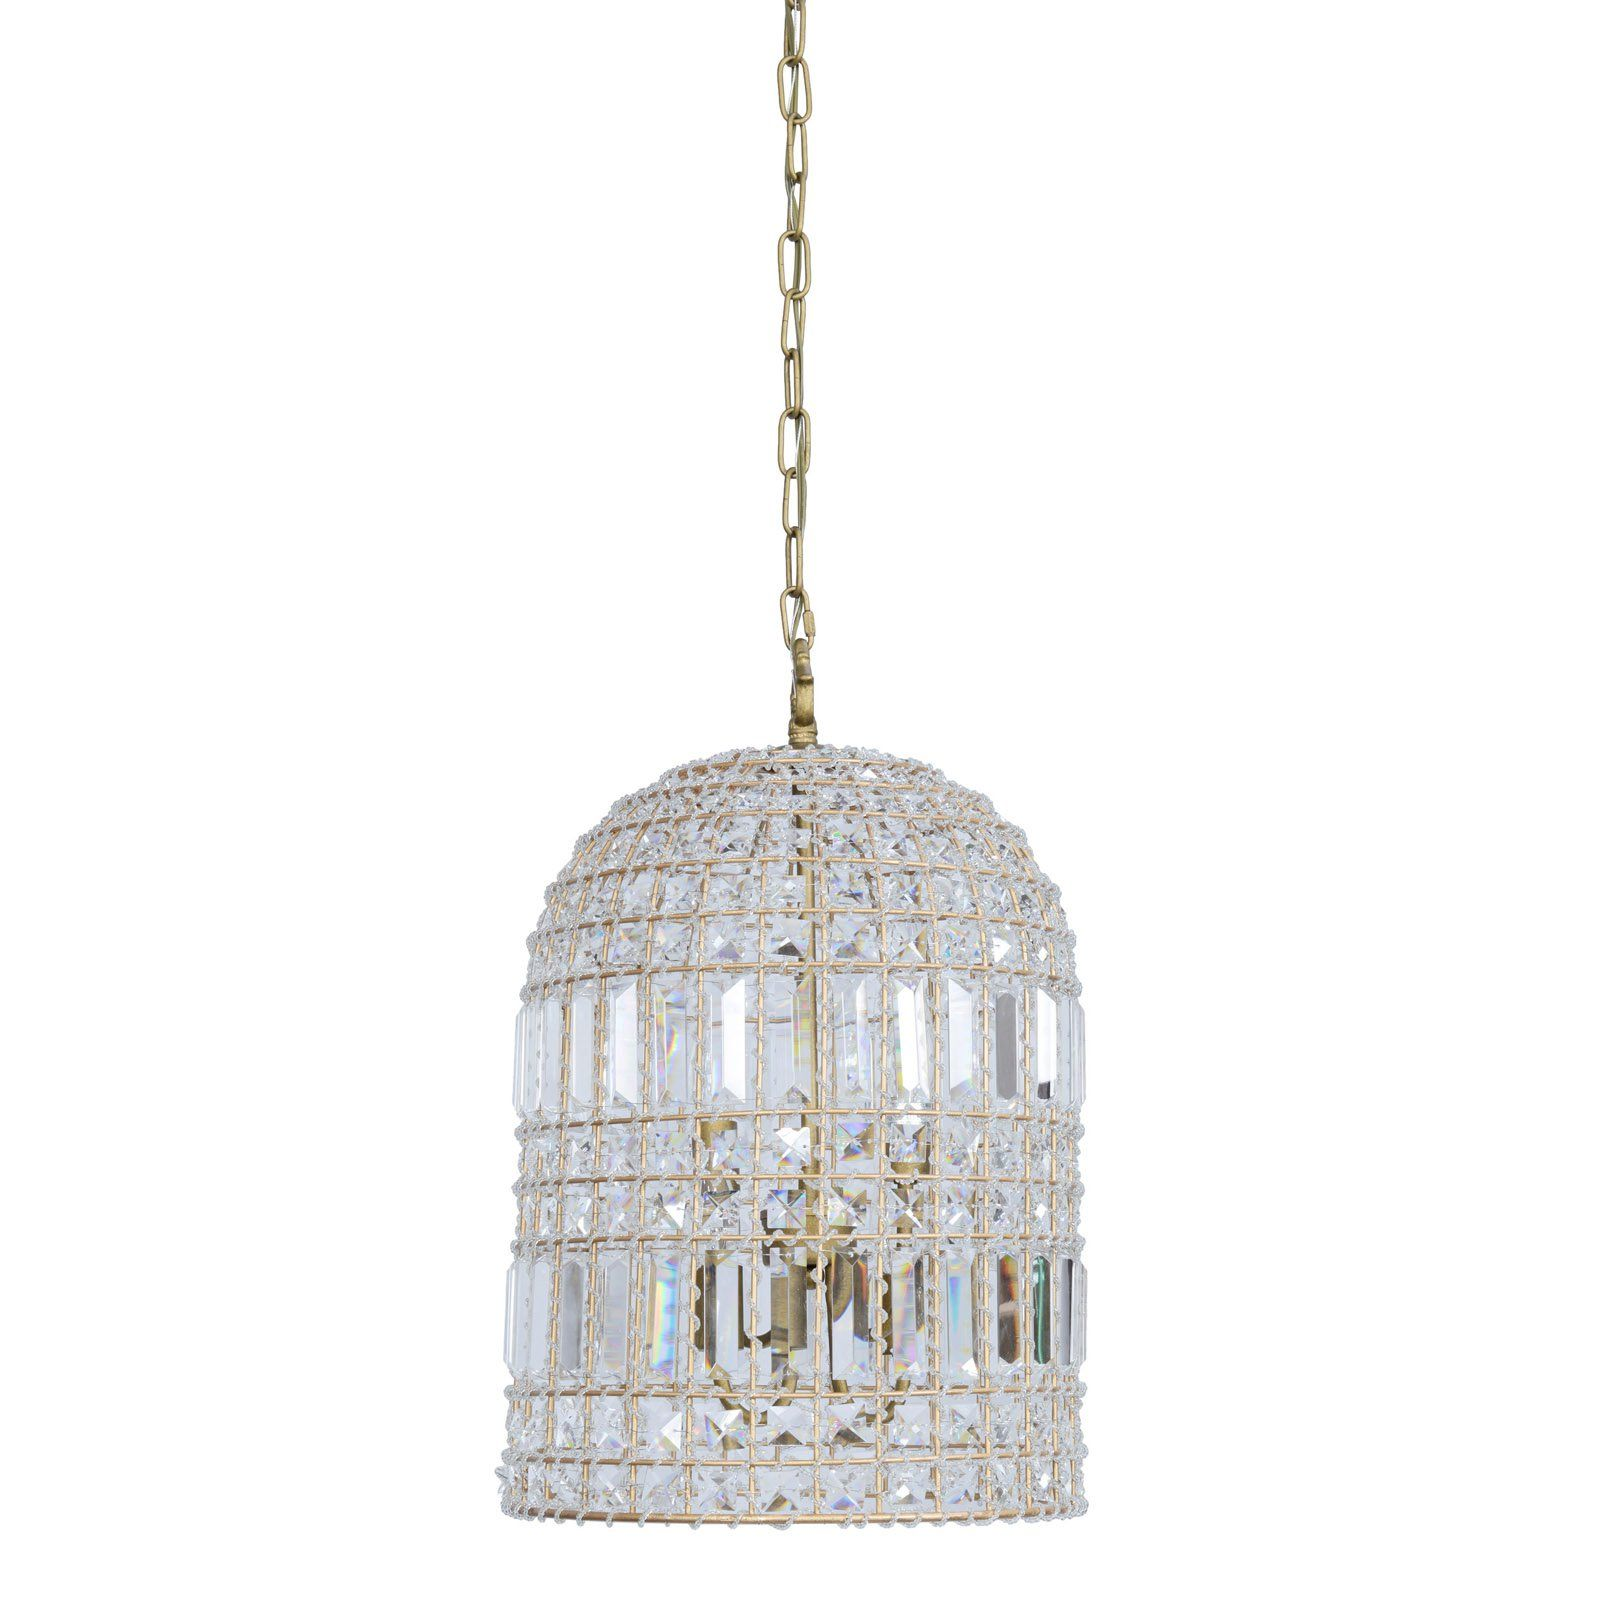 Kosas home mae pendant light products pinterest